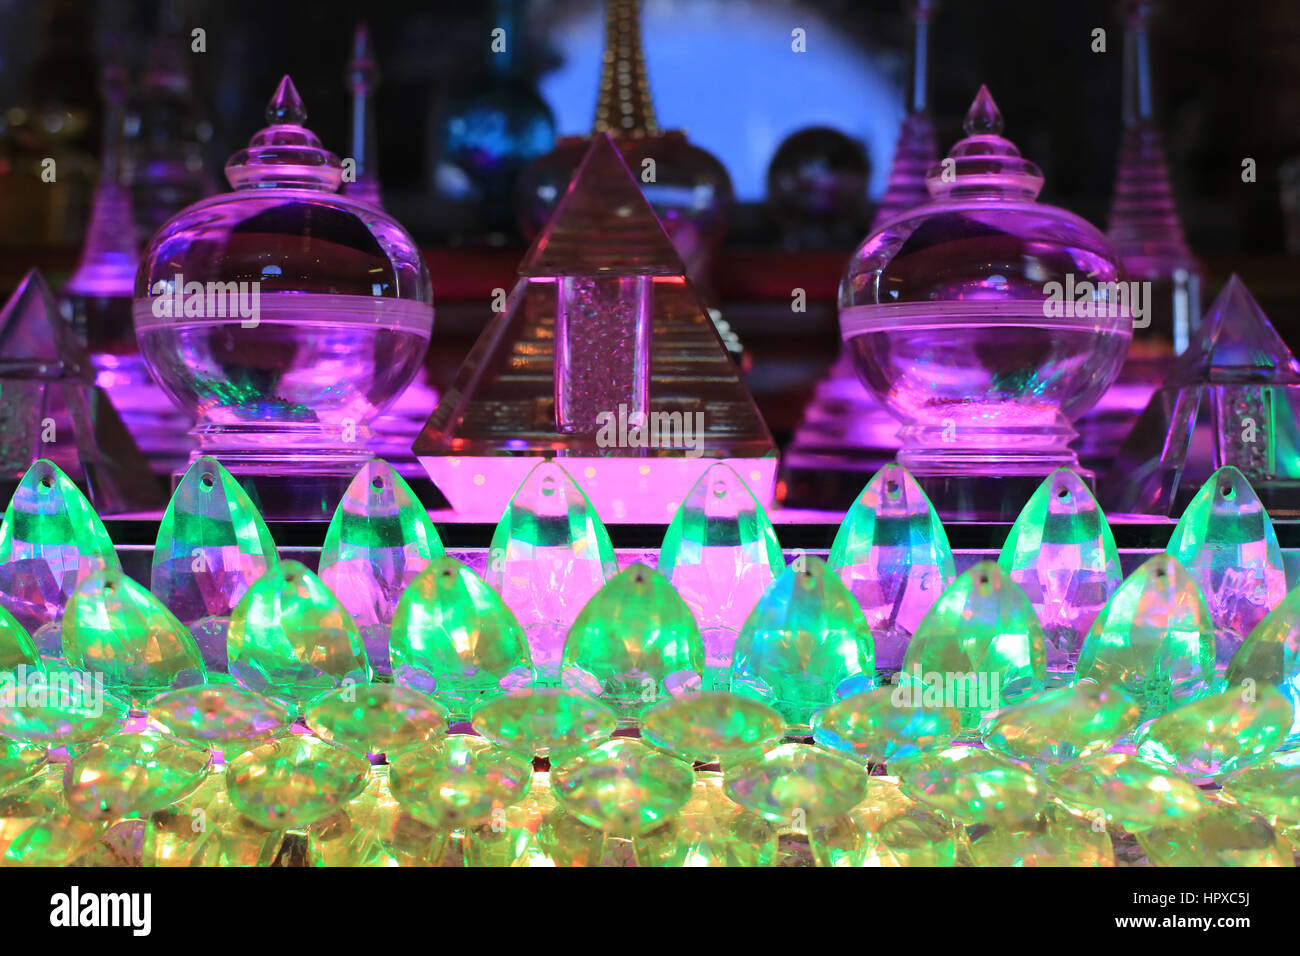 Buddhist relics made of transparent glass. / Reliques bouddhistes en verre transparent. - Stock Image